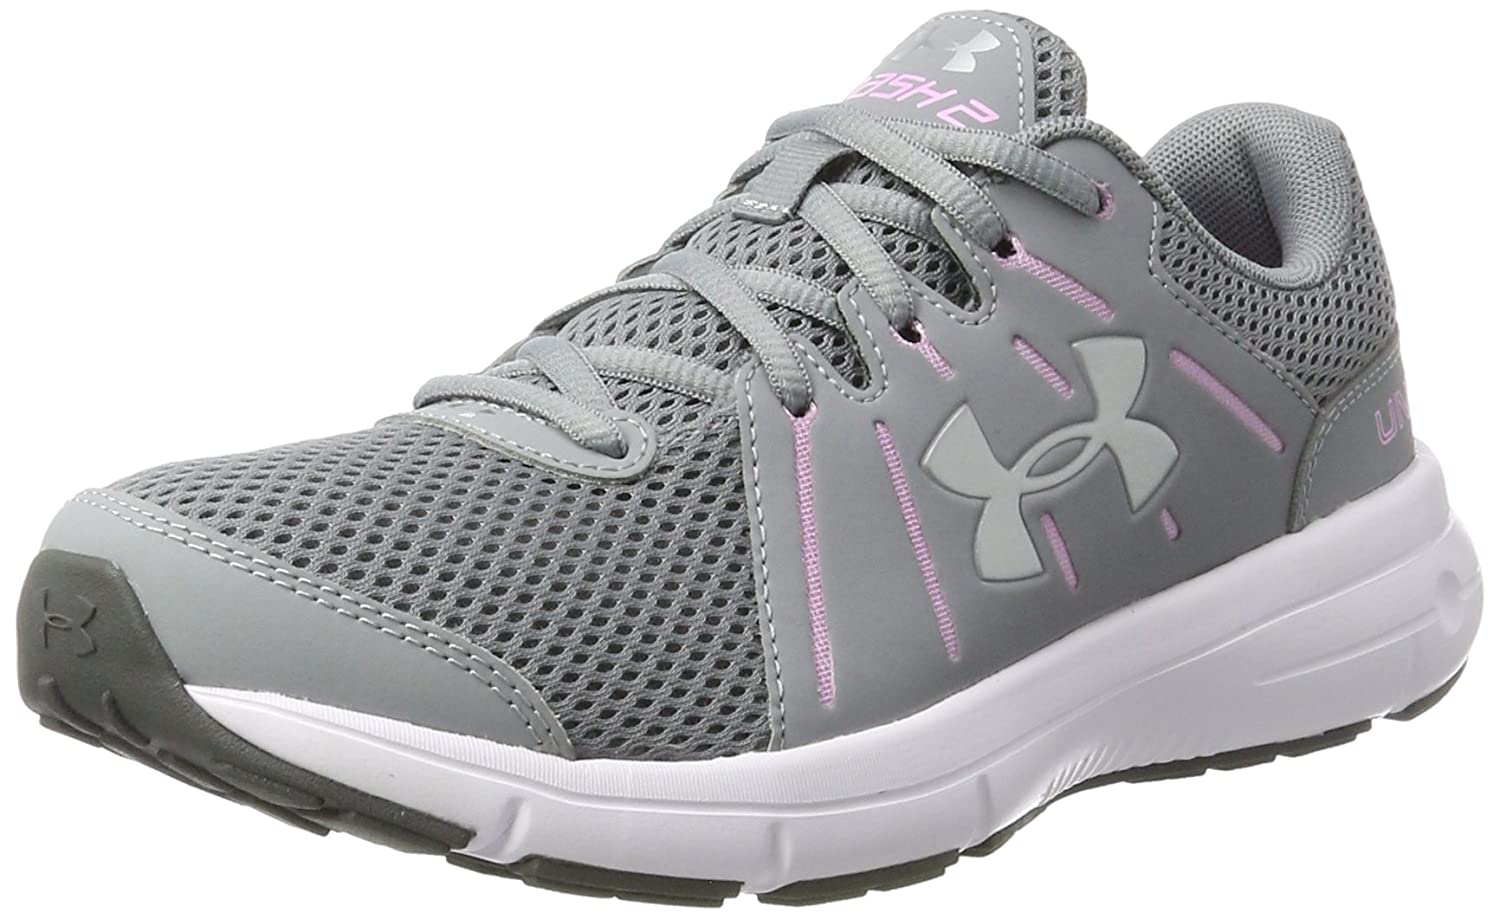 Under Armour Women's Dash 2 Running Shoe B01N4DAM21 11 B(M) US|Steel/Icelandic Rose/Msv